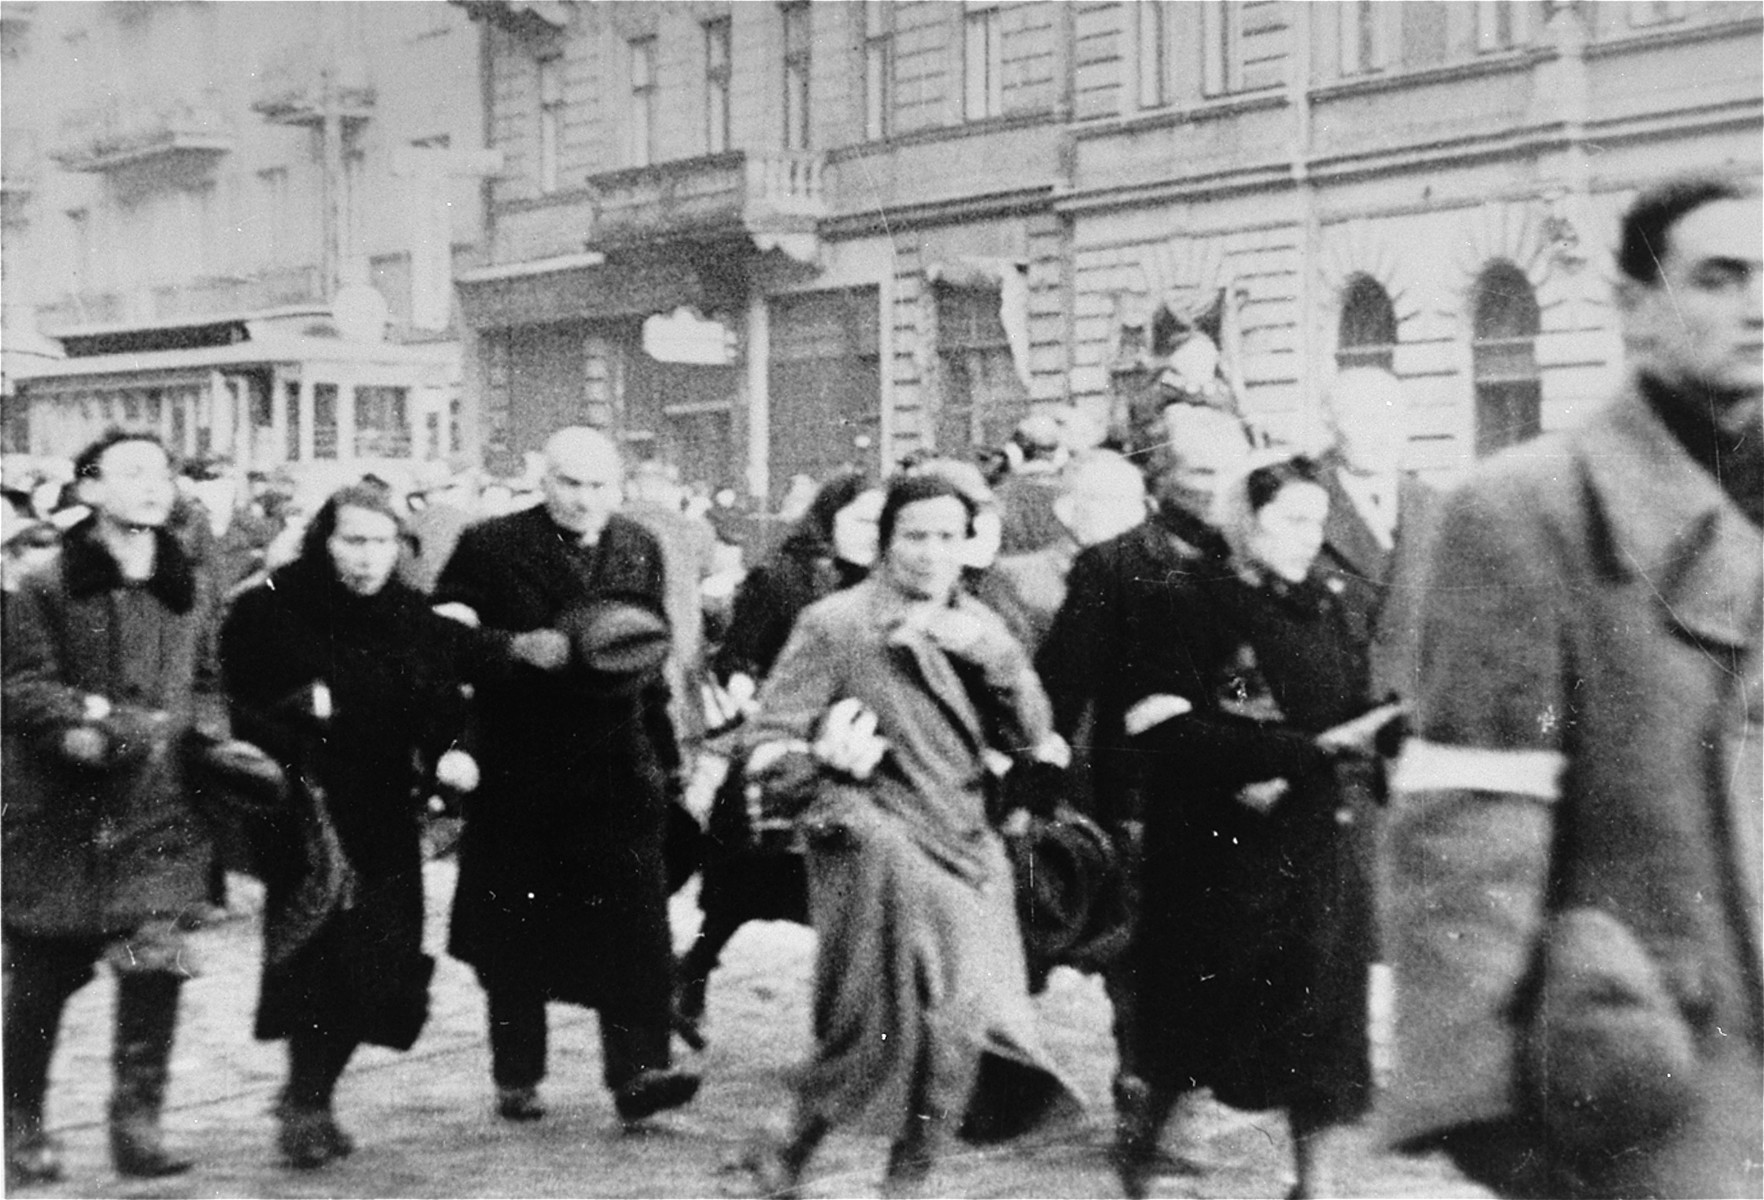 Jews who have been rounded-up for deportation in the Warsaw ghetto walk along a street to the assembly area.